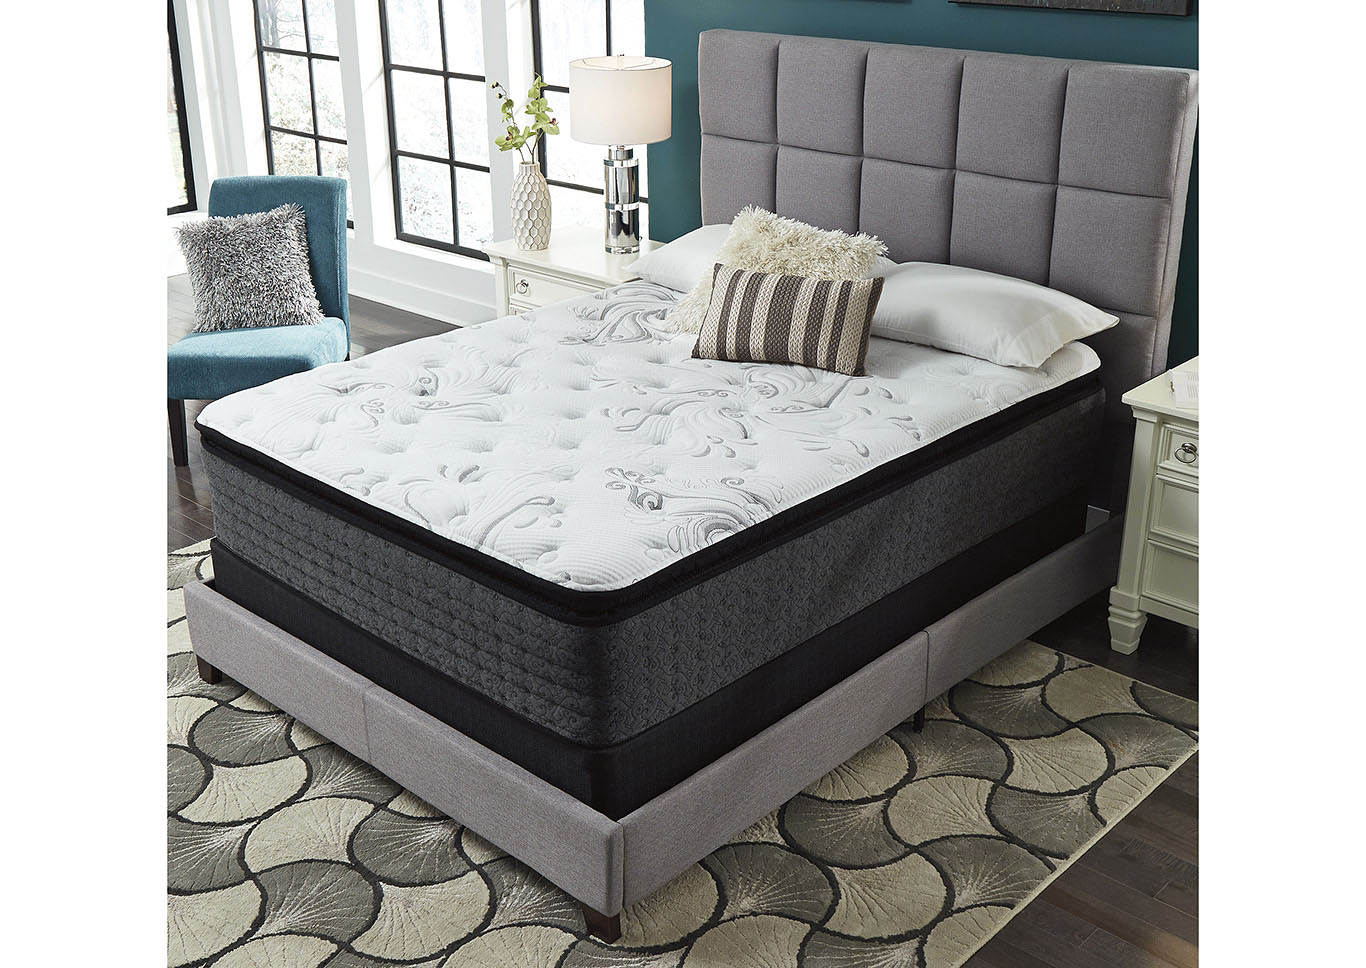 Bar Harbor Firm PT King Mattress w/Foundation,Ashley